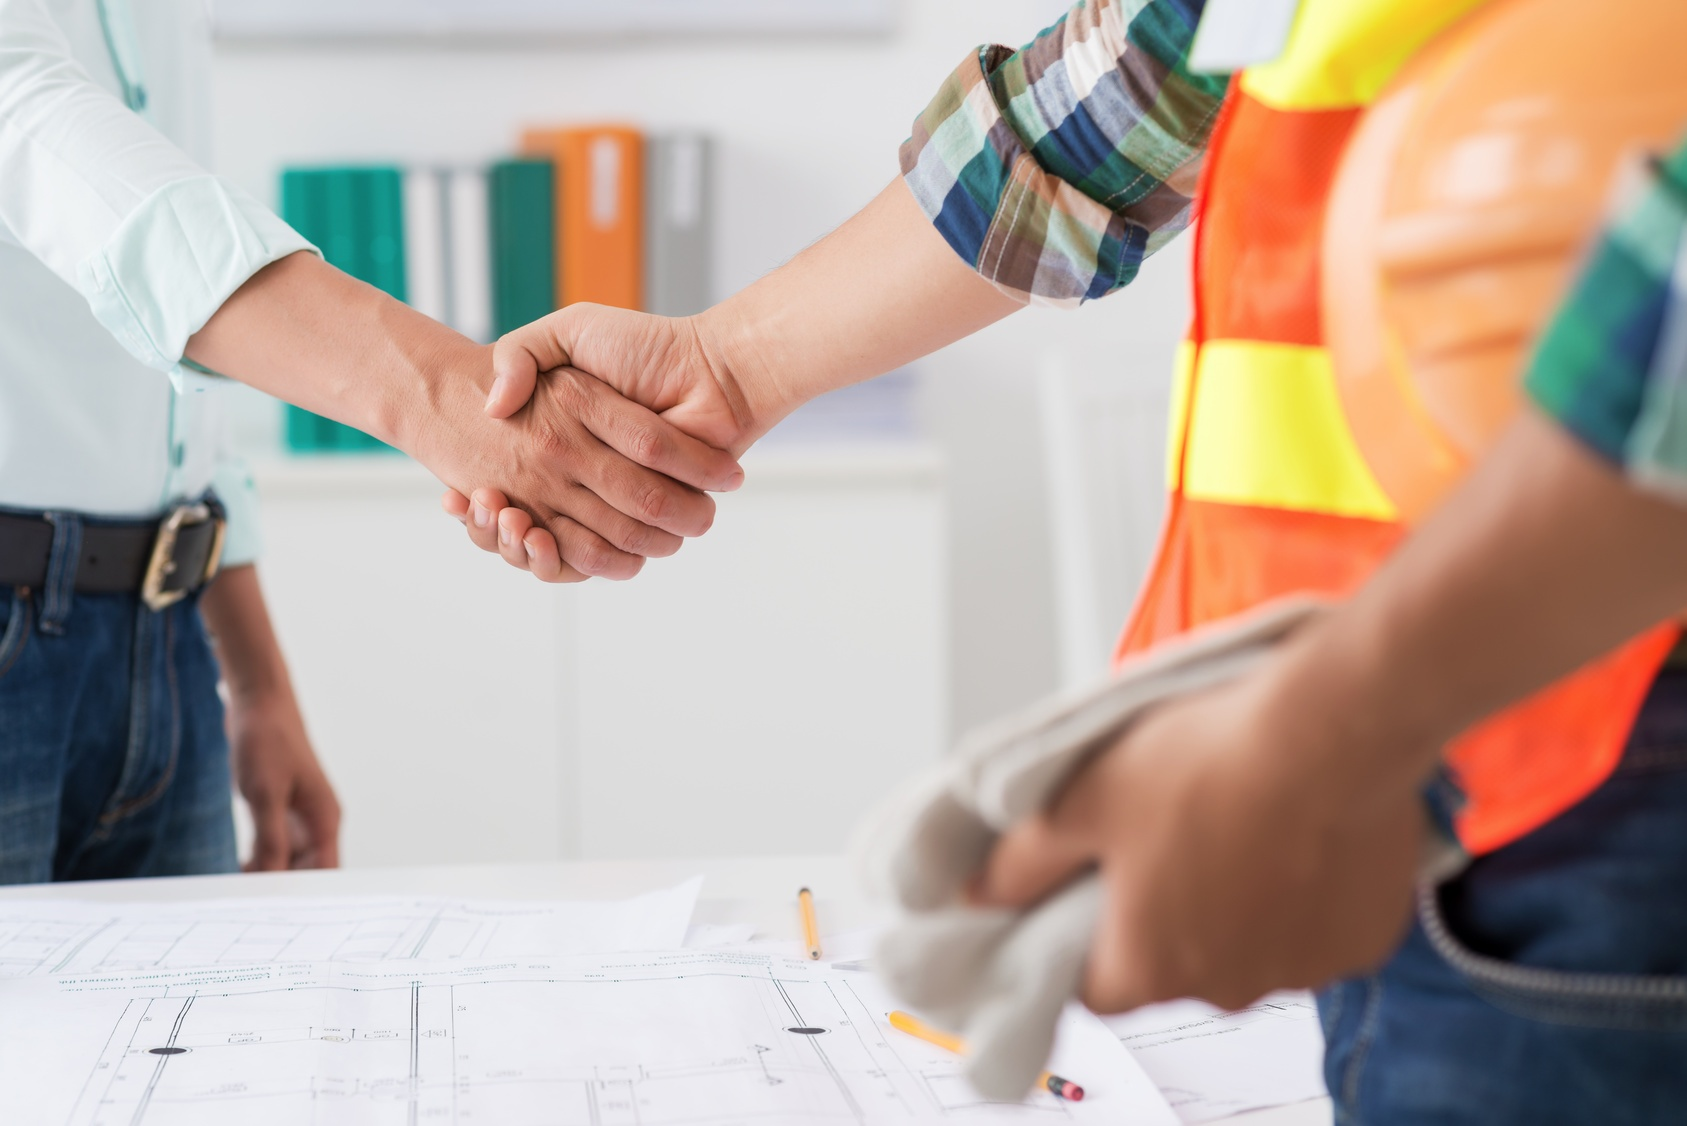 7 Reasons Why Subcontracting May Be Right For You